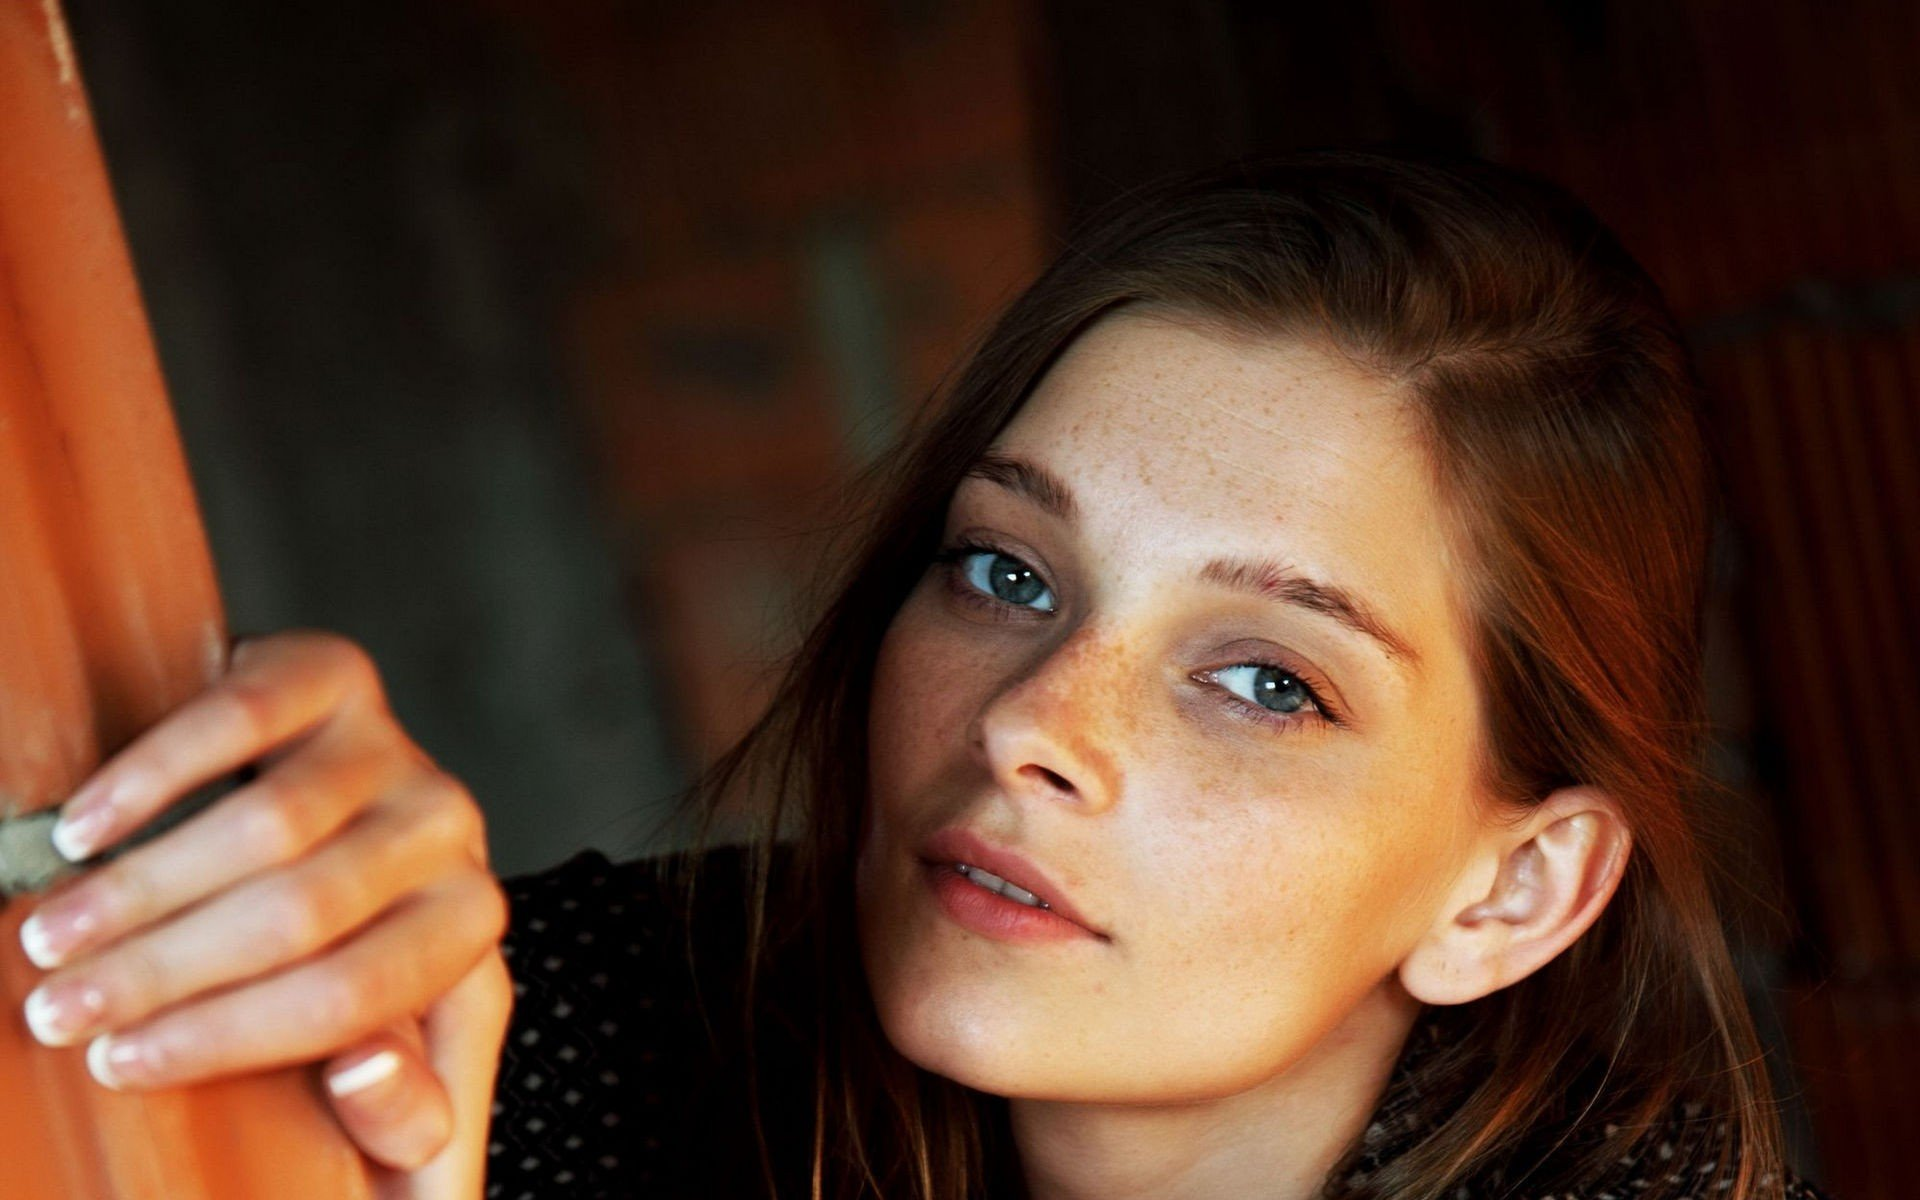 Women Freckles Archives - Hdwallsourcecom-2705